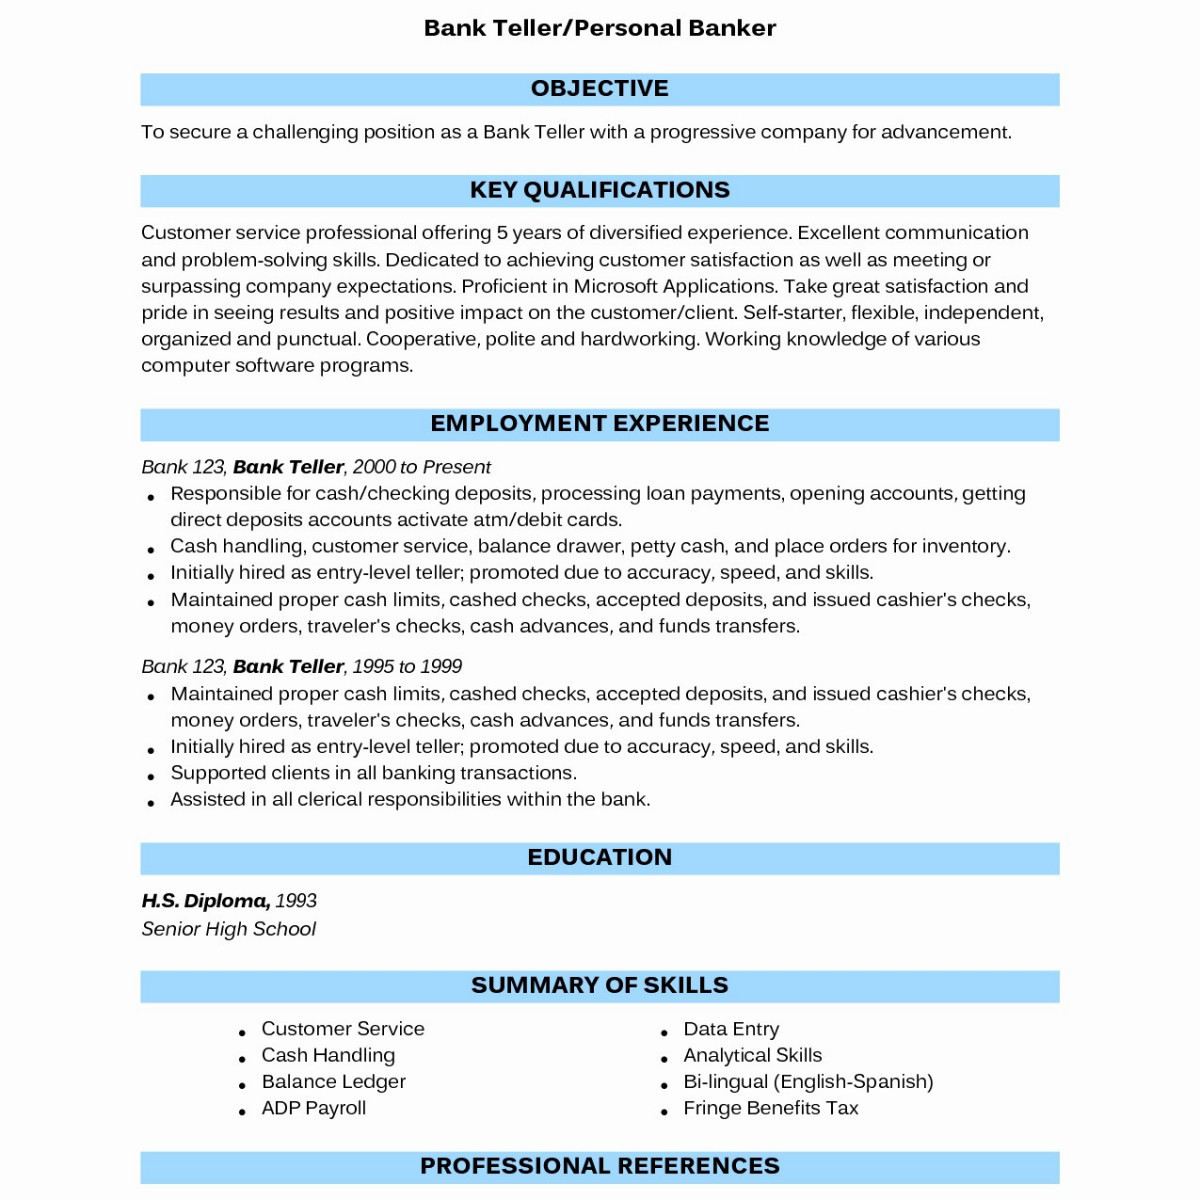 How To Spell Resume Sample Banking Resumes Sample 14 Resume How To Spell Ideas Of Sample Banking Resumes how to spell resume|wikiresume.com